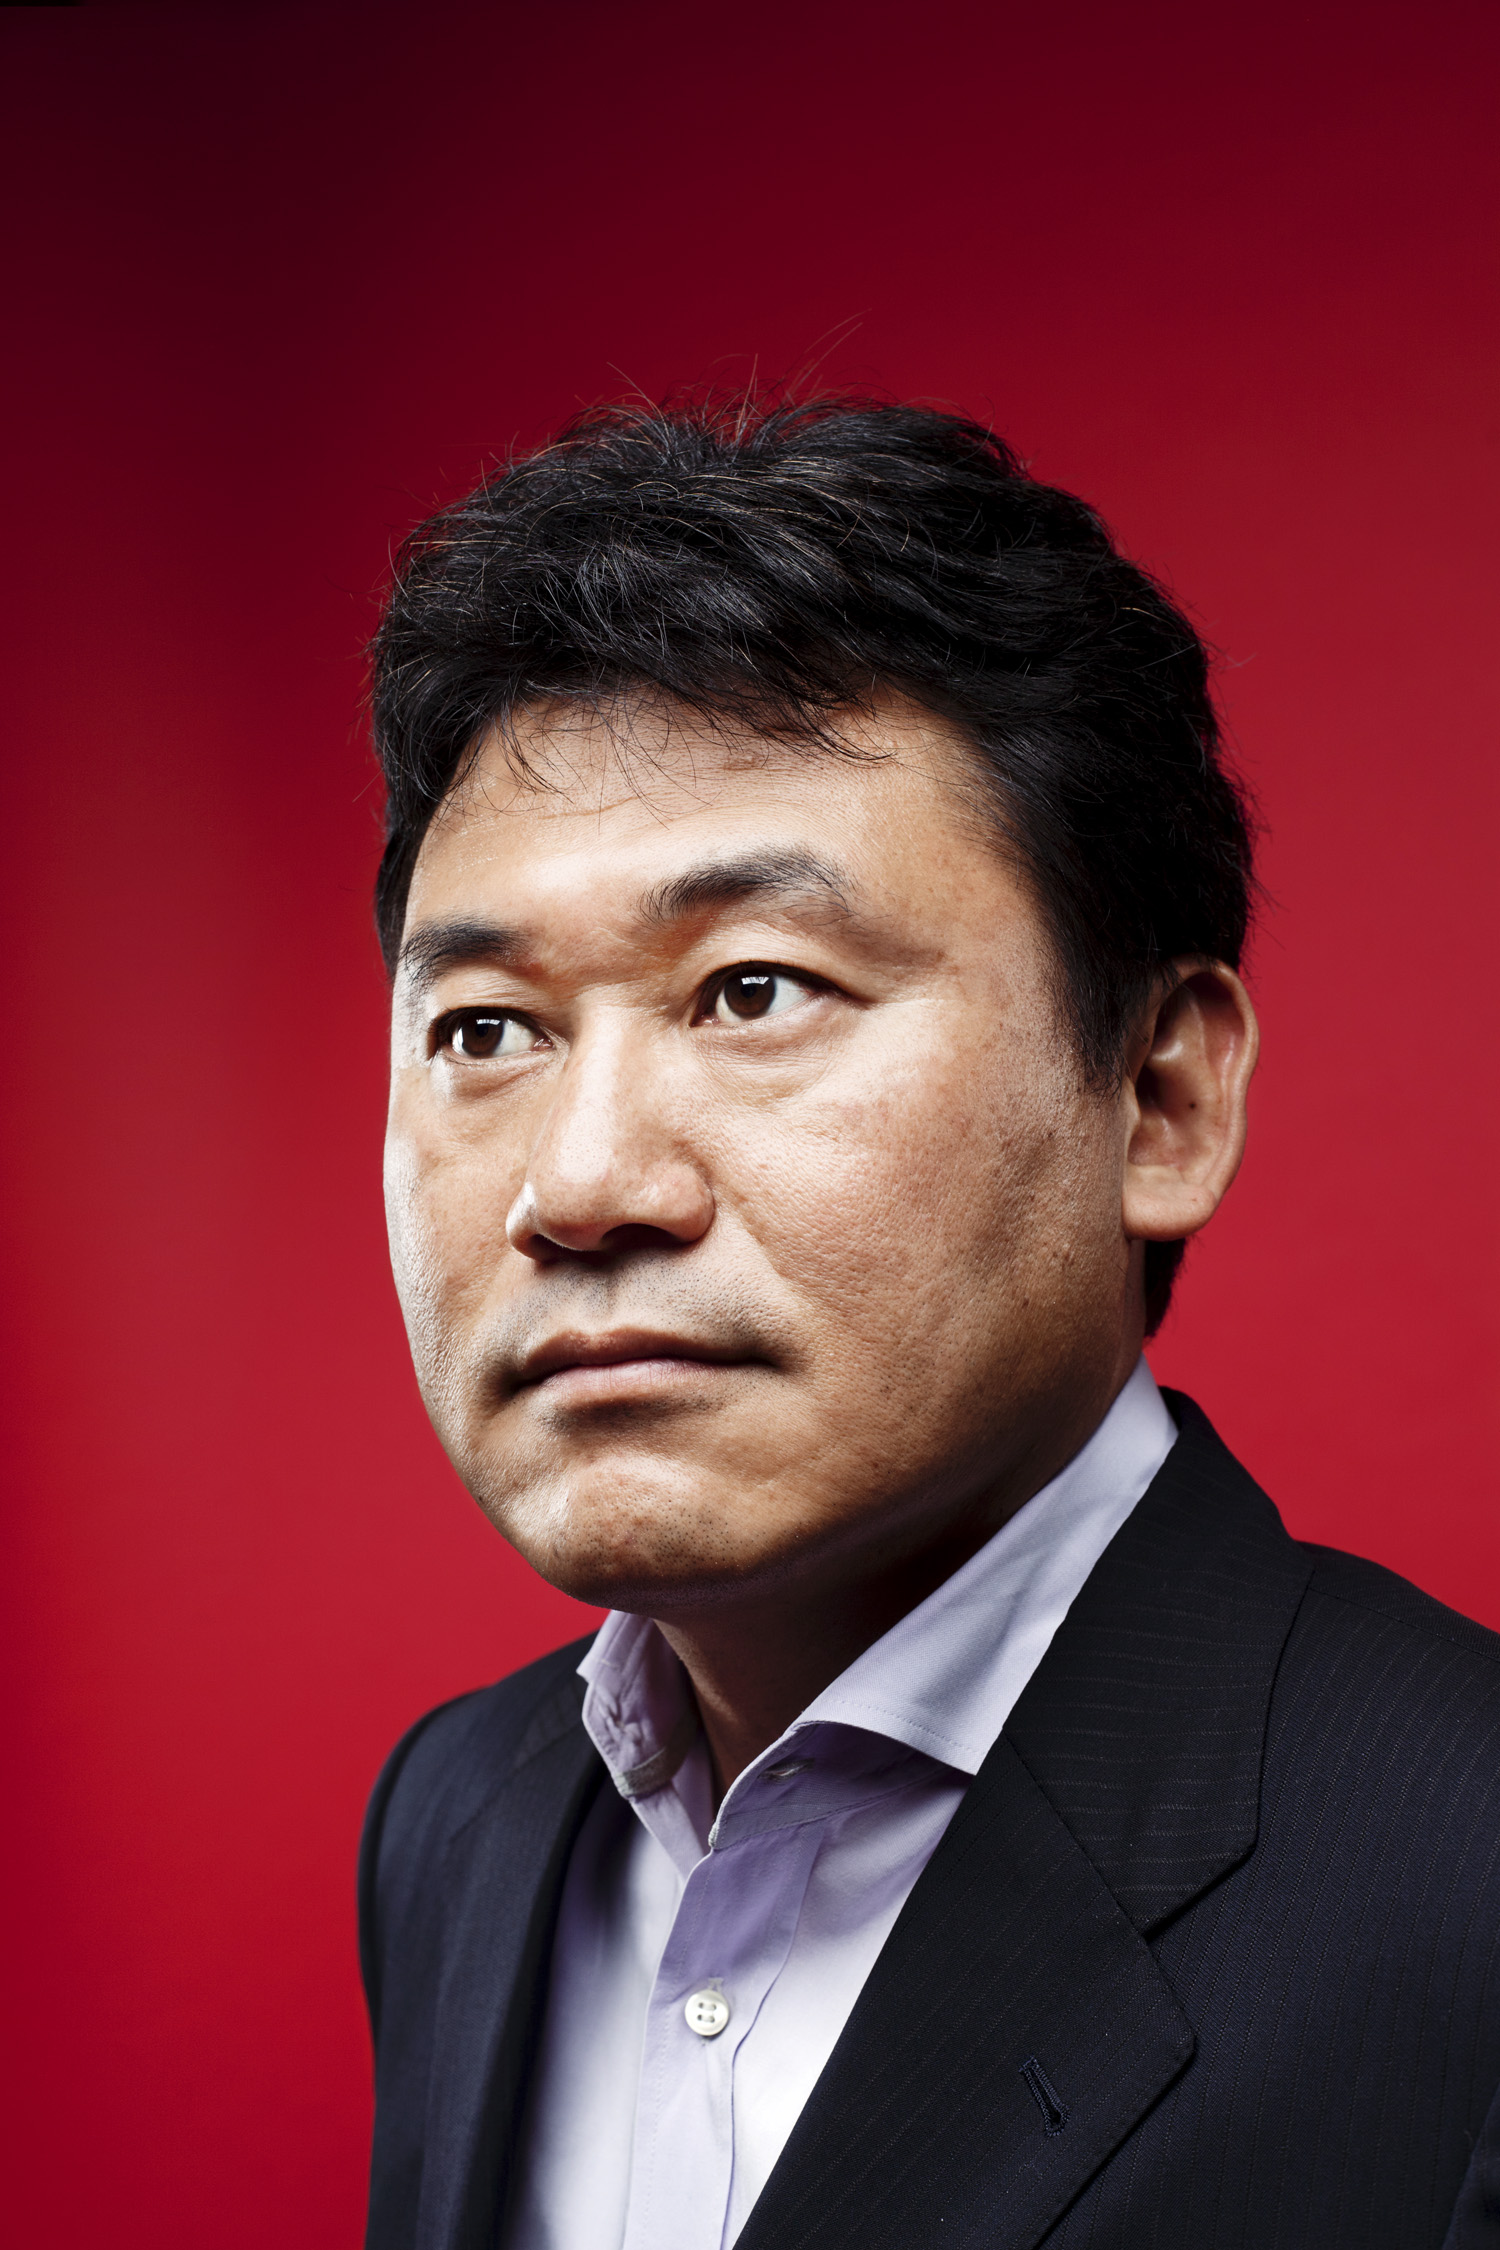 Japan's e-commerce pioneer, Hiroshi Mikitani, is assembling one of Asia's most diverse Internet conglomerates. But can it succeed?